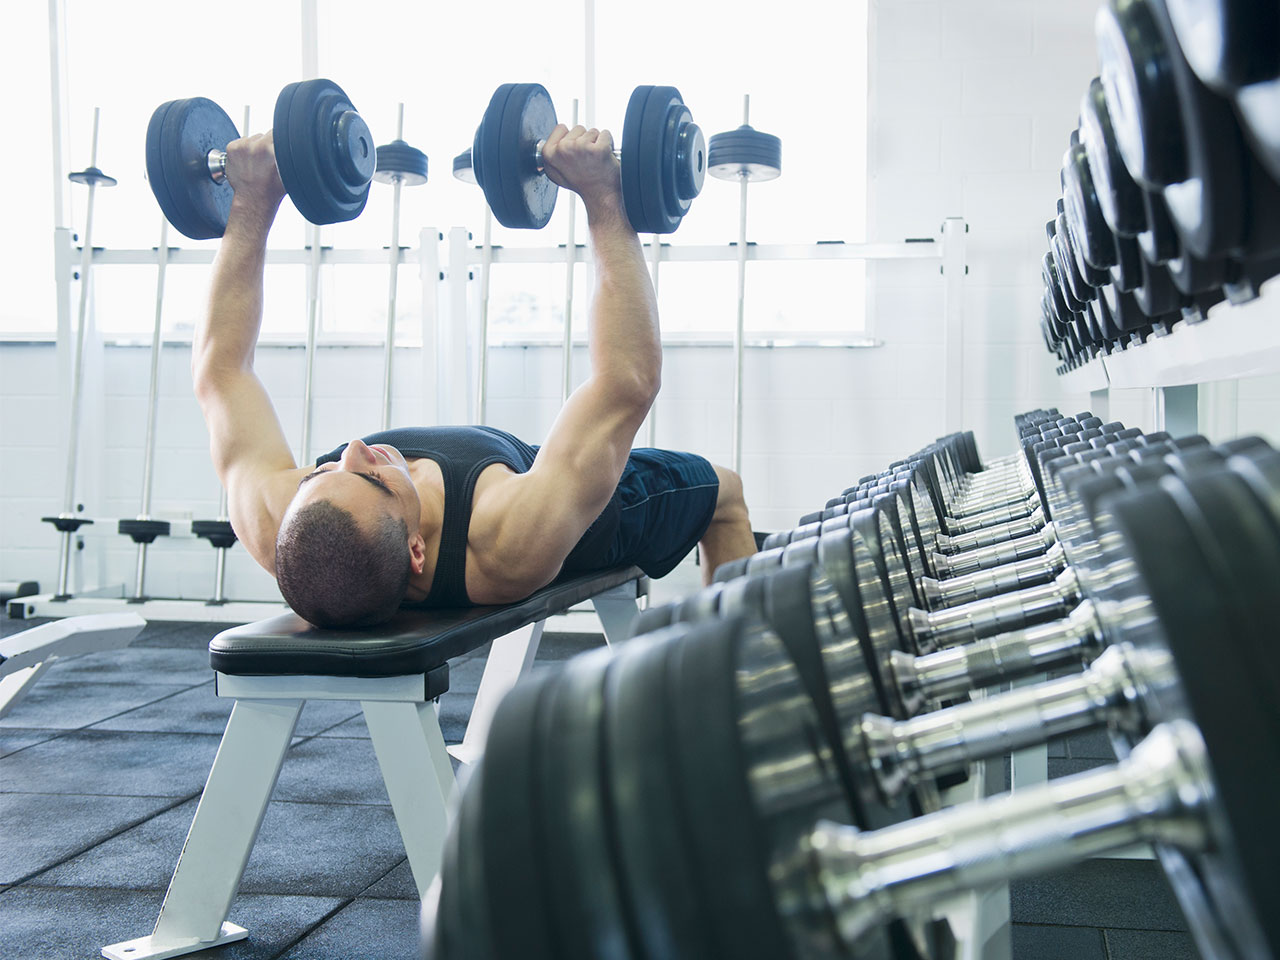 gym chest chair big joe bean bag camo the 10 best exercises for beginners blend images dave and les jacobs getty 4